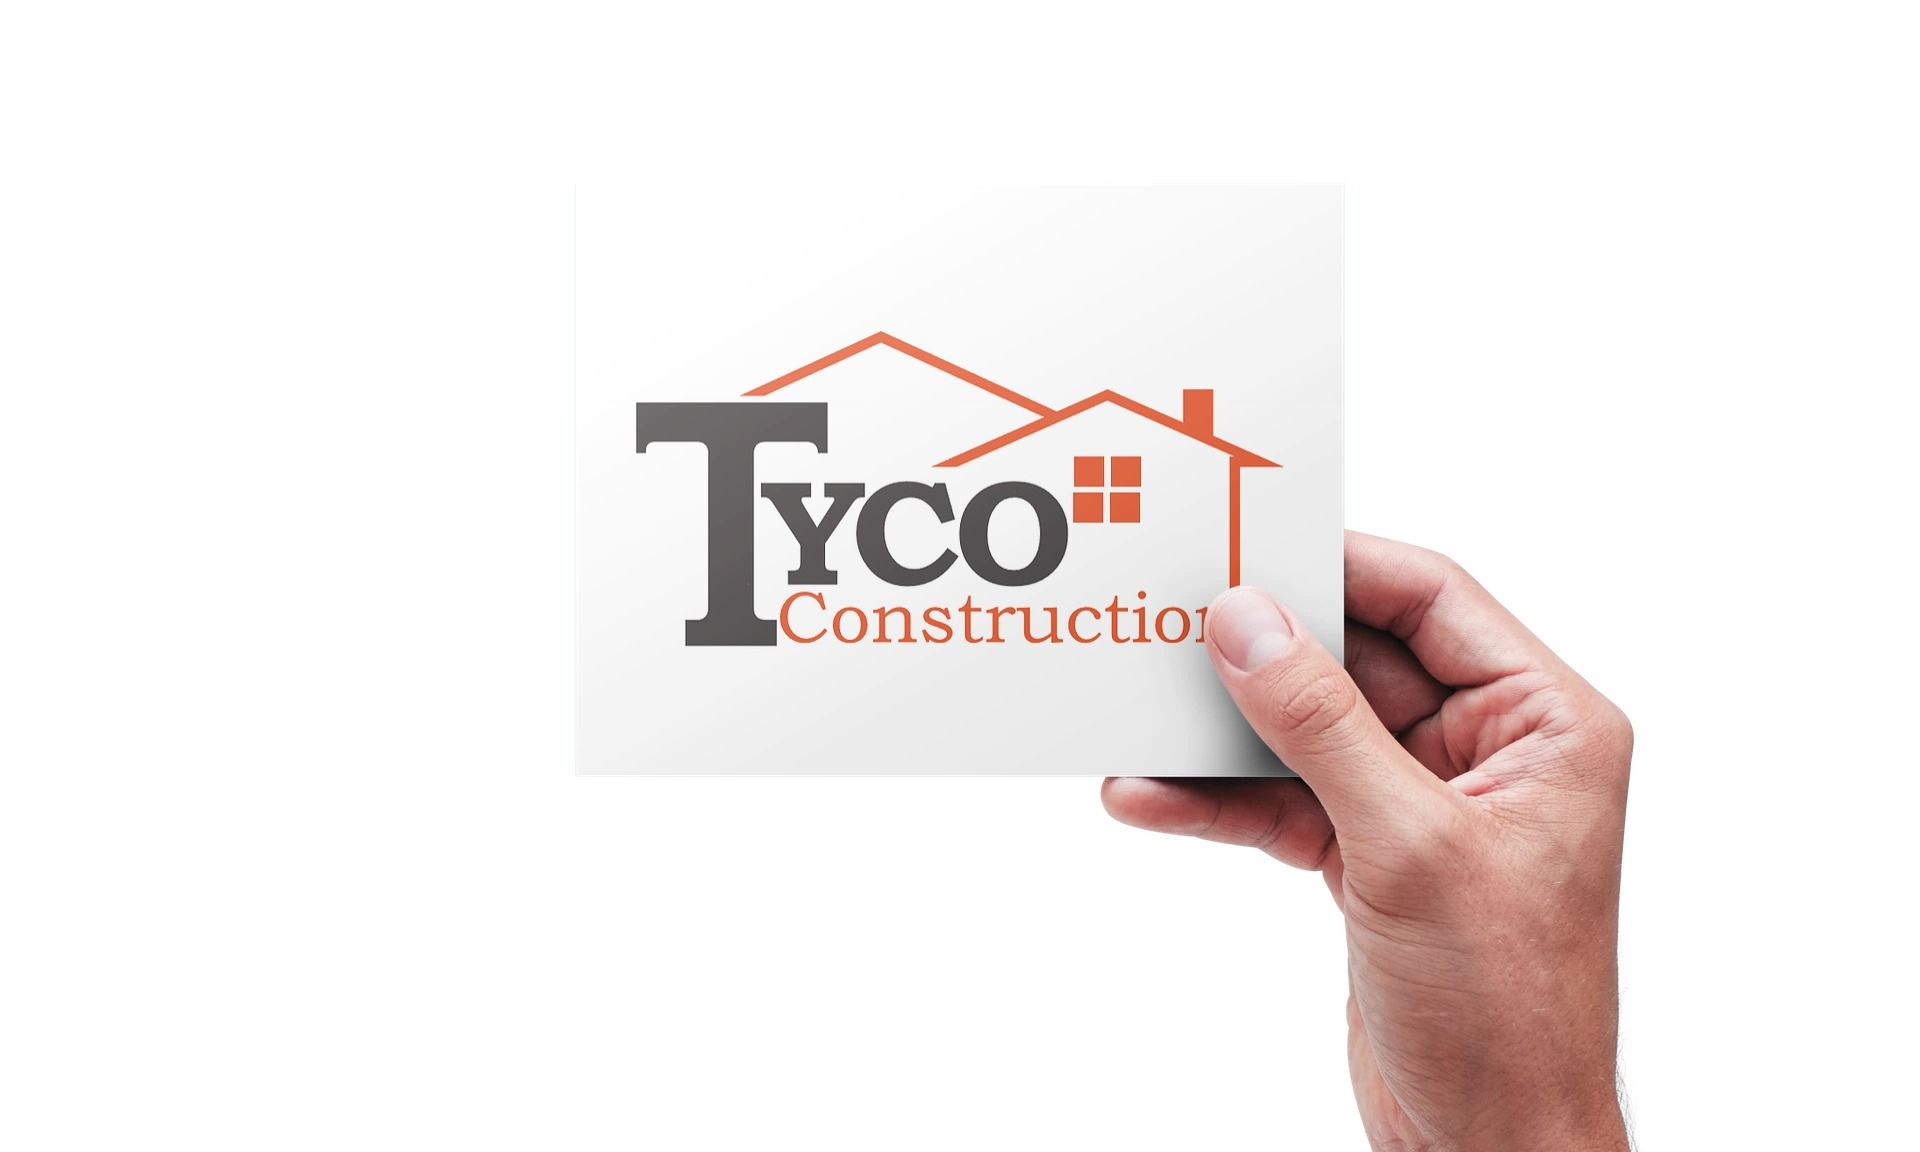 Tyco Construction logo on the board